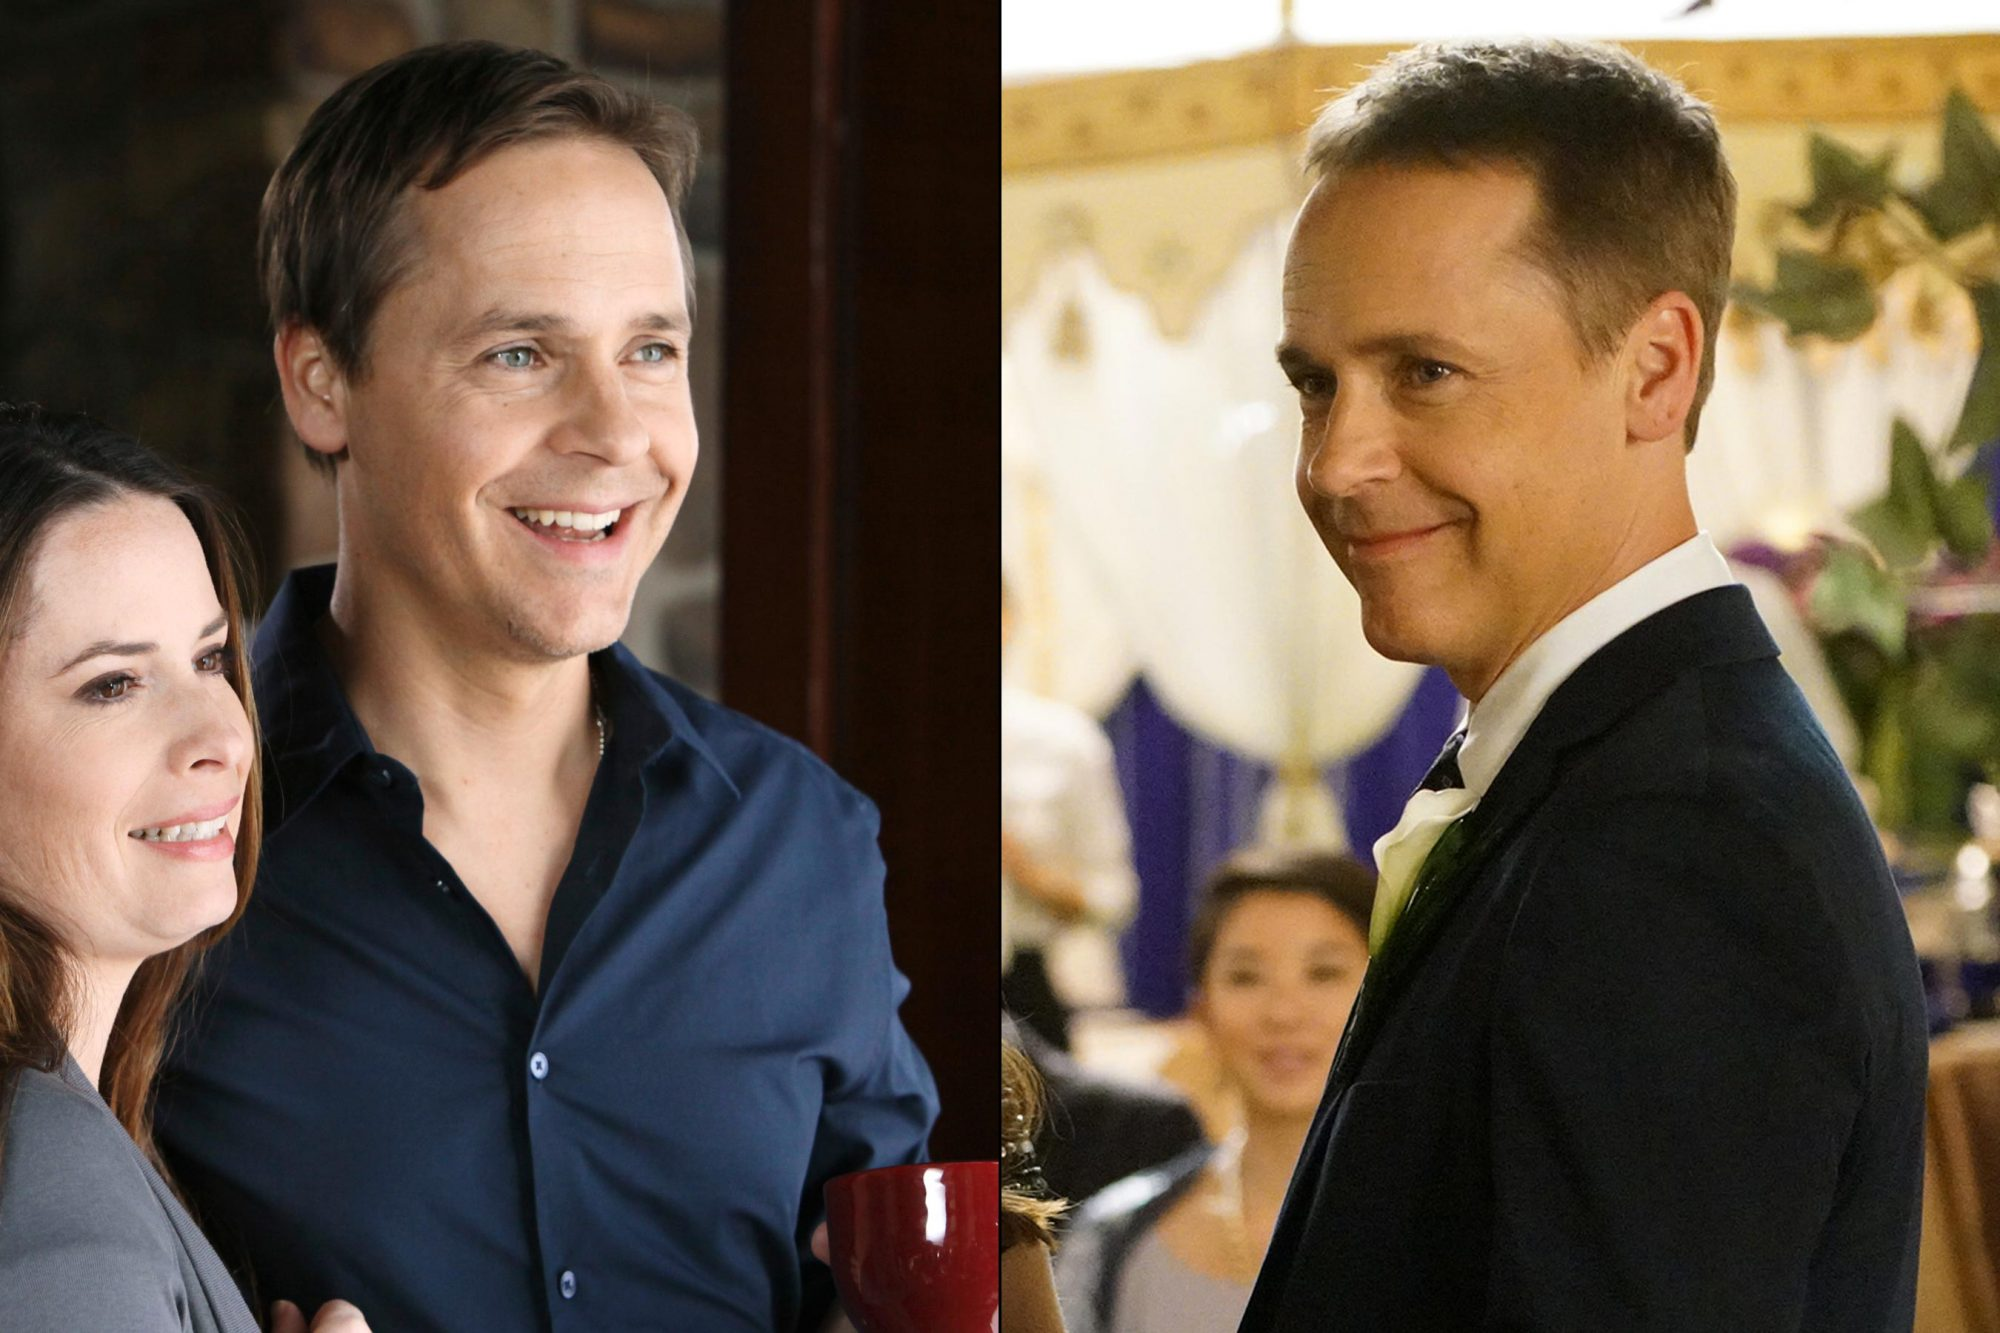 Chad Lowe in season 1 (left) and season 7 (right)